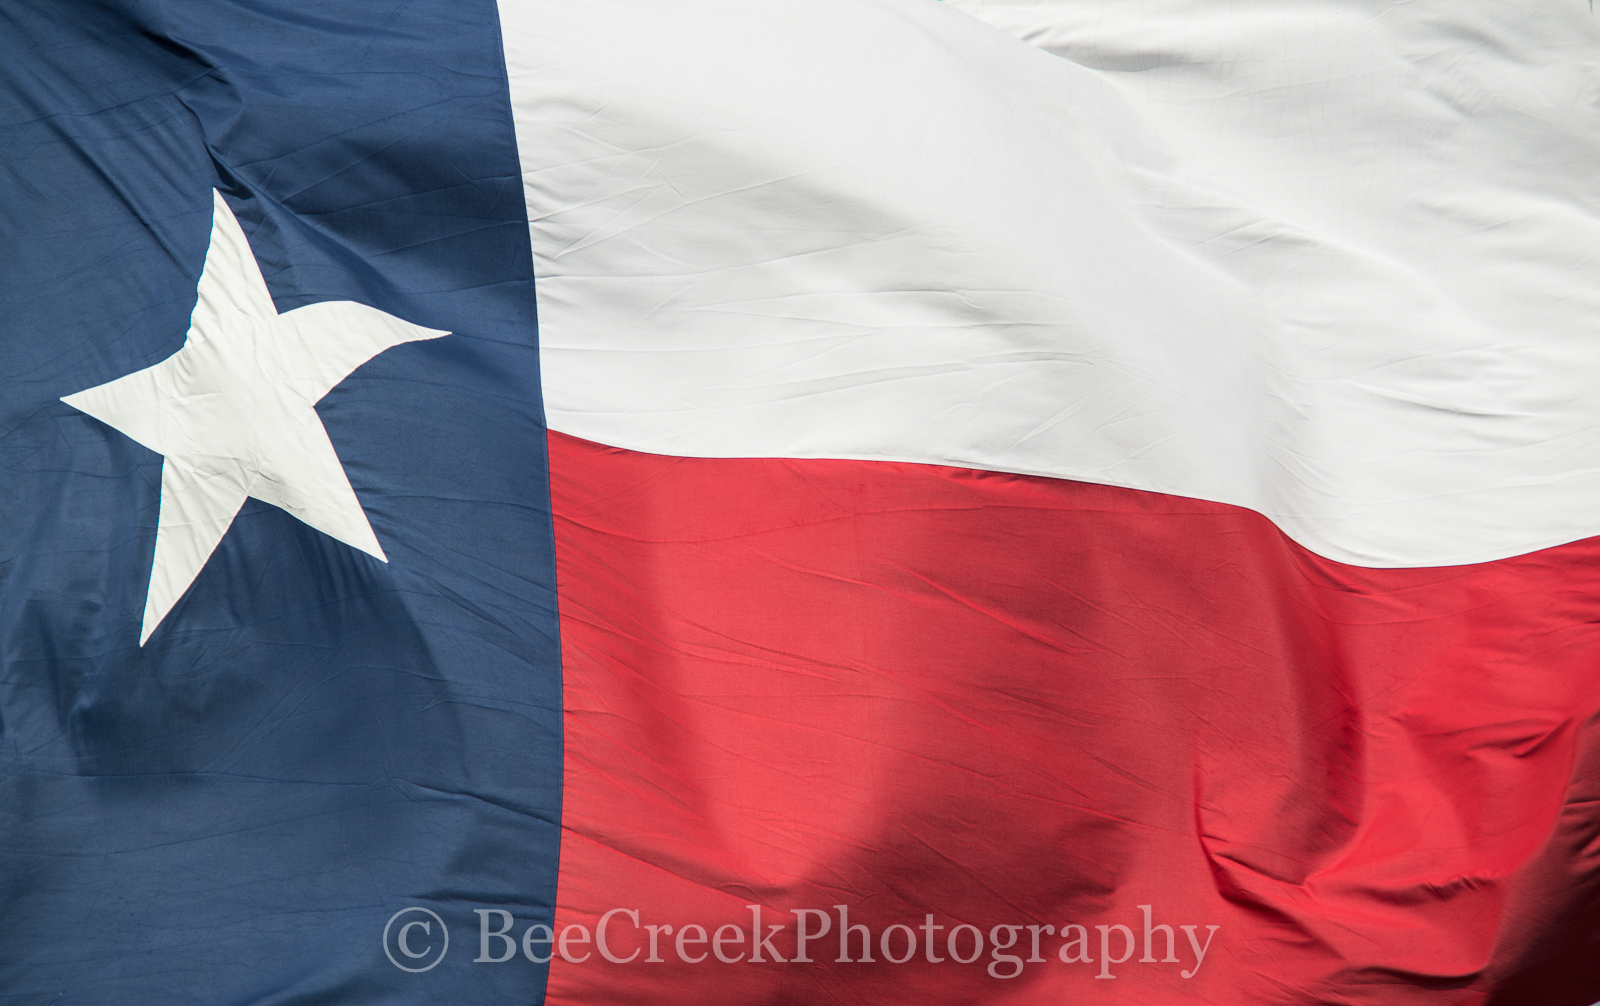 Texas Flag, Texas symbol, flag, image of texas flag, photo of texas flag, photos from austin, photos from texas, stock photo flag, texas, photo